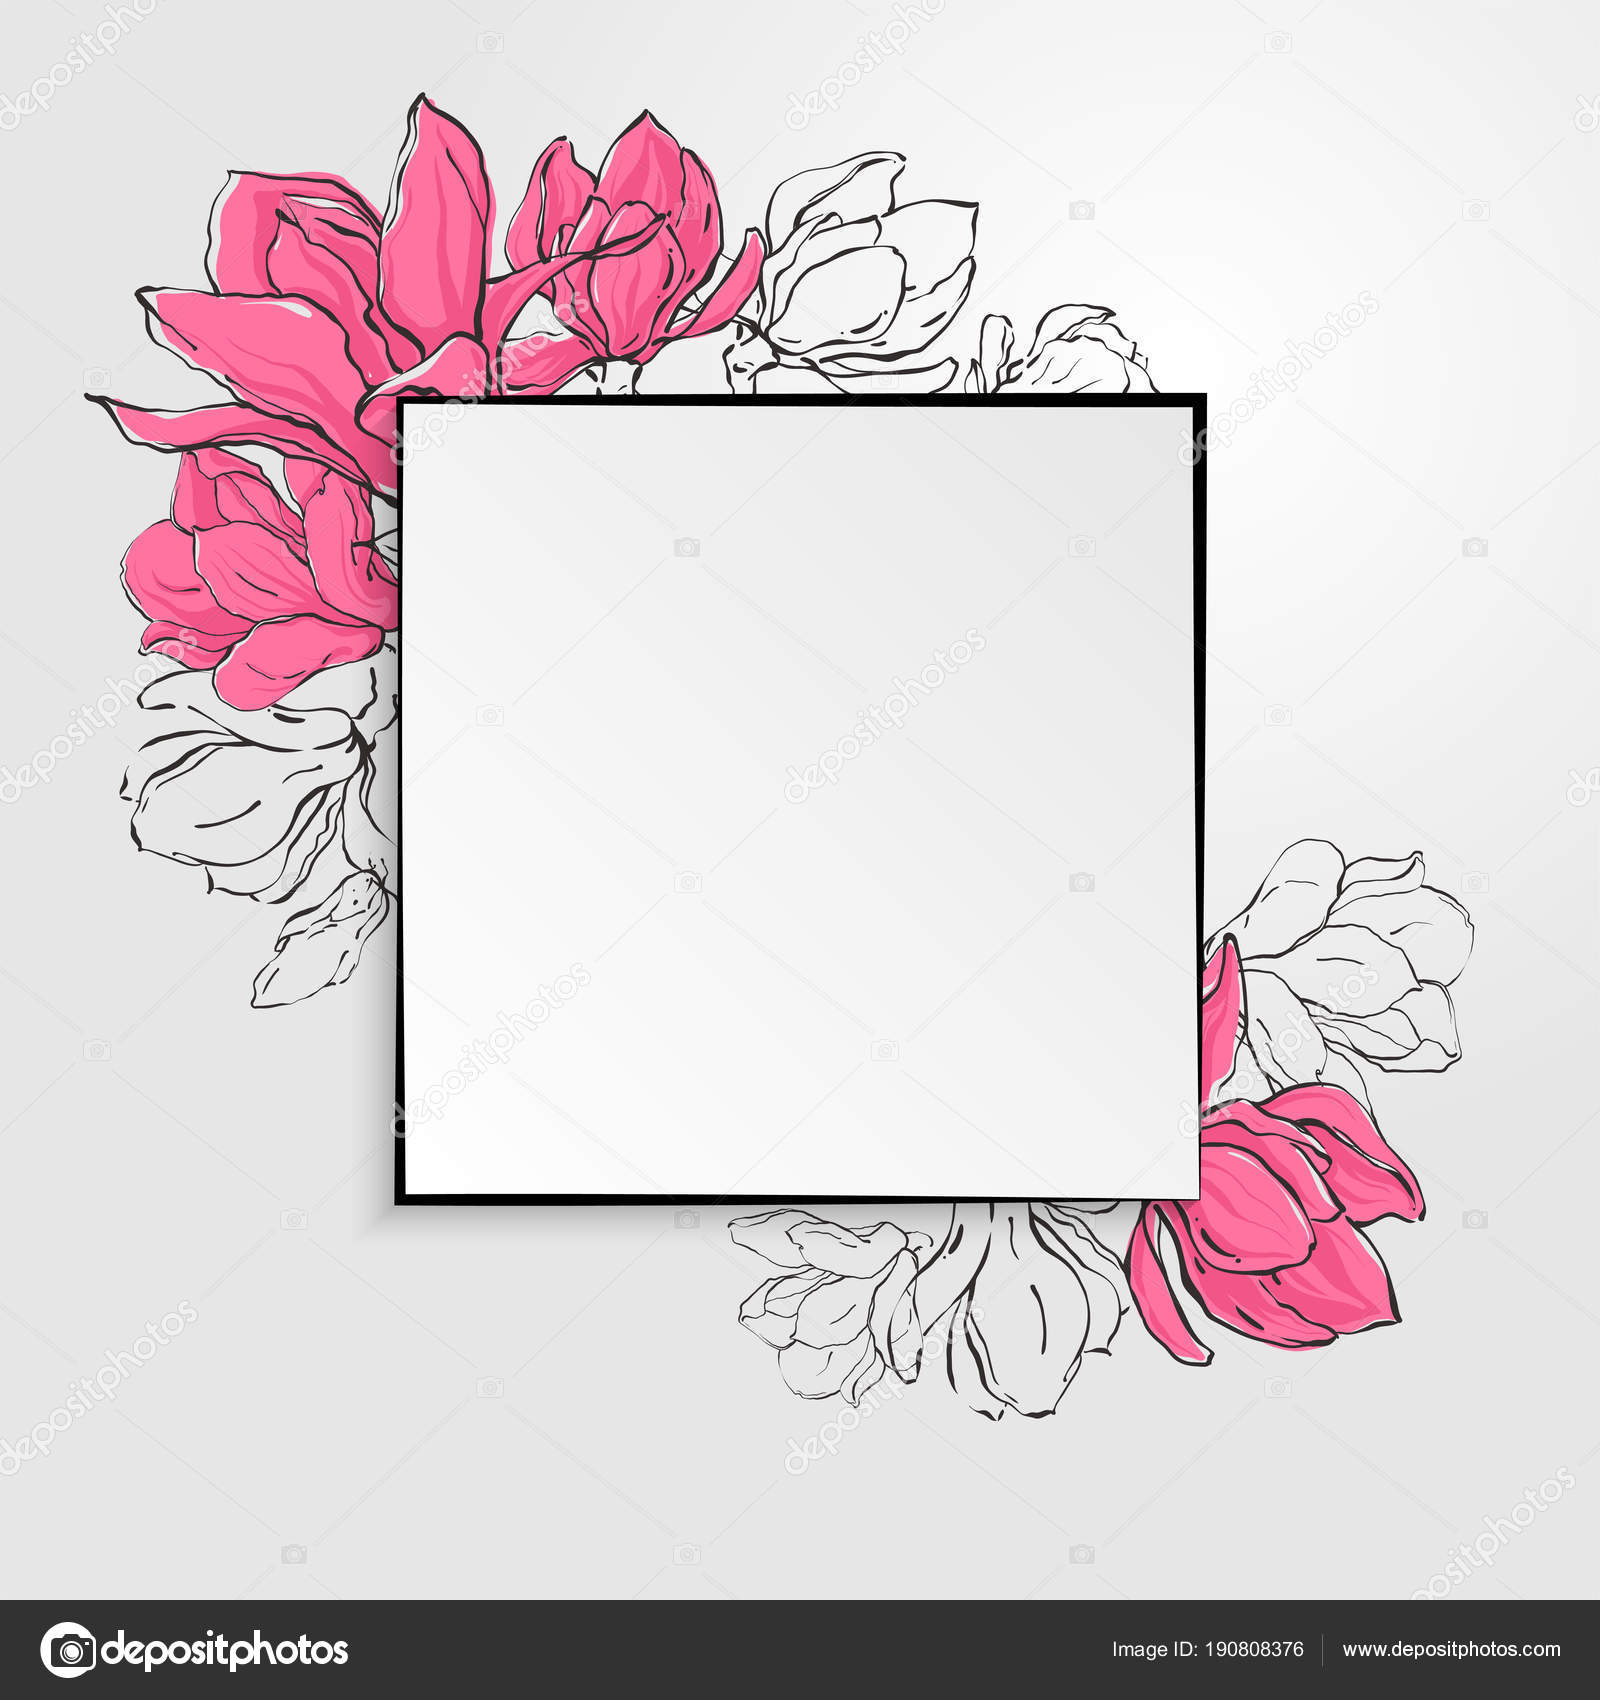 Banner template with square paper with black border and sketch banner template with square paper with black border and delicate sketch magnolia flowers vector by felinaart maxwellsz